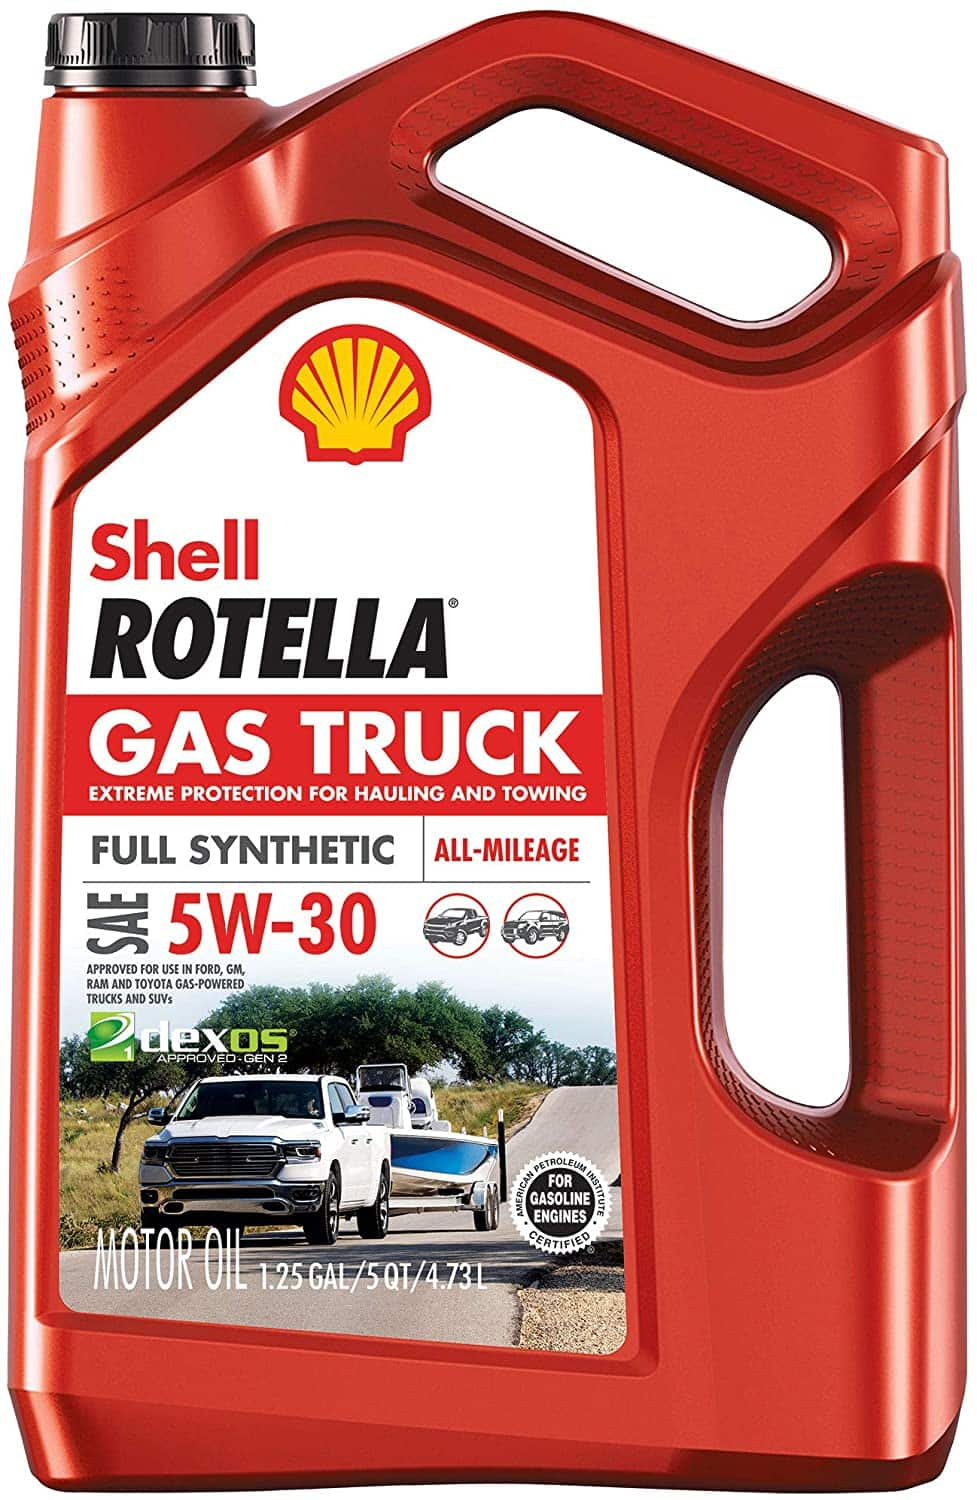 Shell Rotella -Full Synthetic 5W-30 Motor Oil 5-Quart, $15.34 with Amazon SS - $15.34